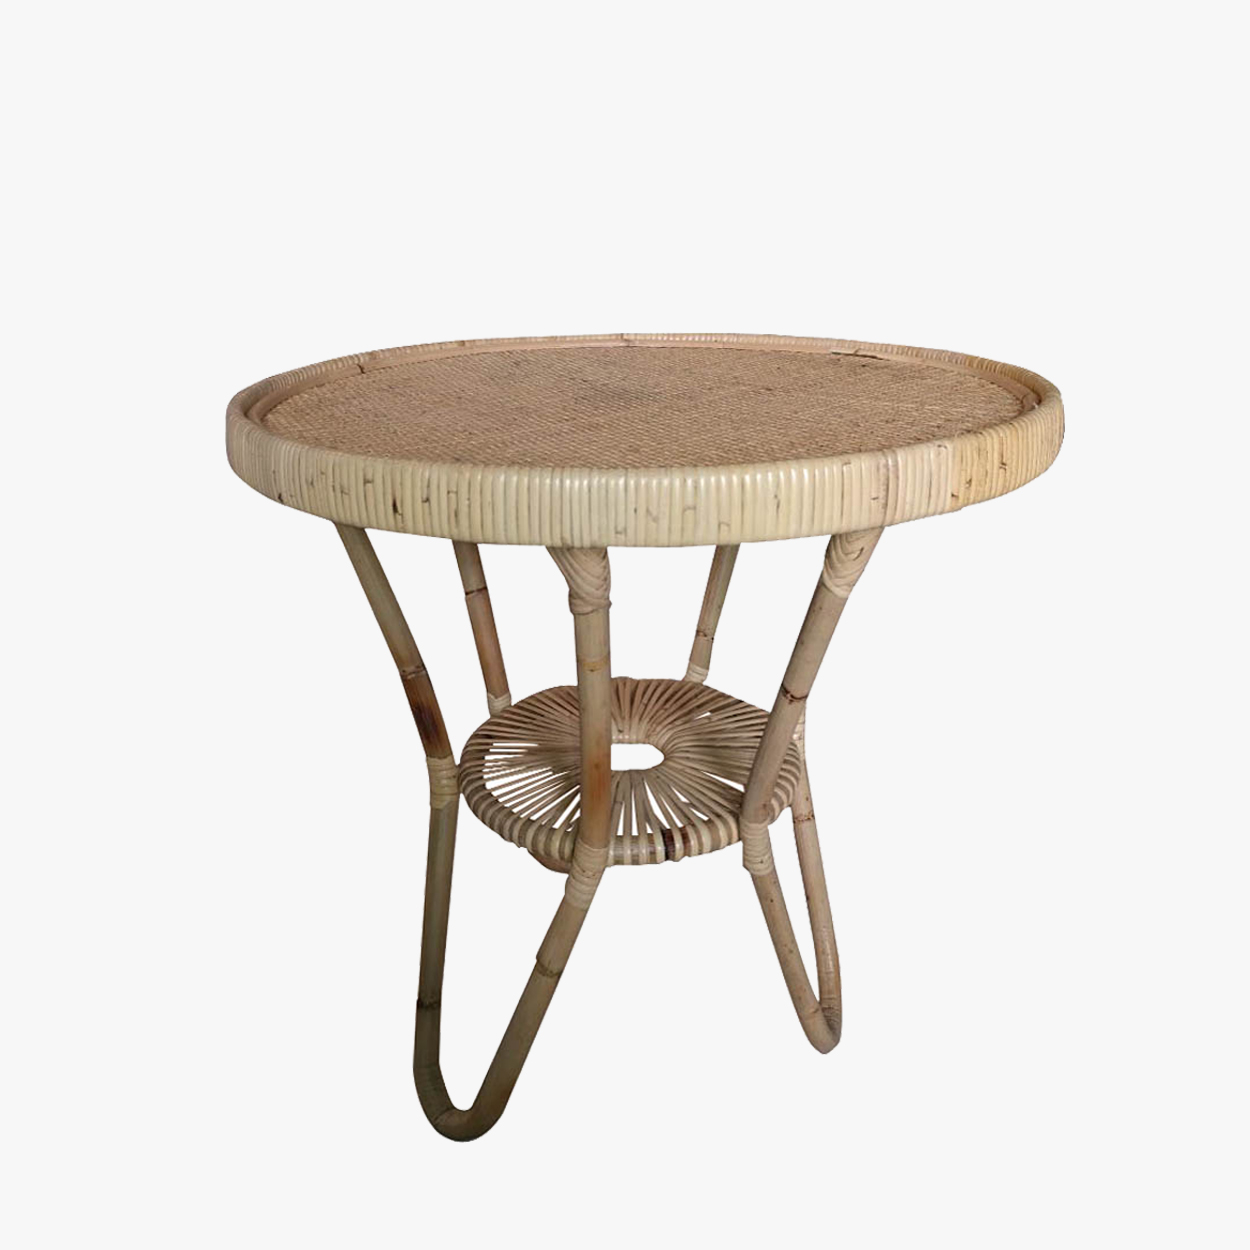 justina blakeney libra side table accent tables dear keaton metal outdoor small chest drawers for hallway mirrored nightstand sheesham wood console wine contemporary end pottery